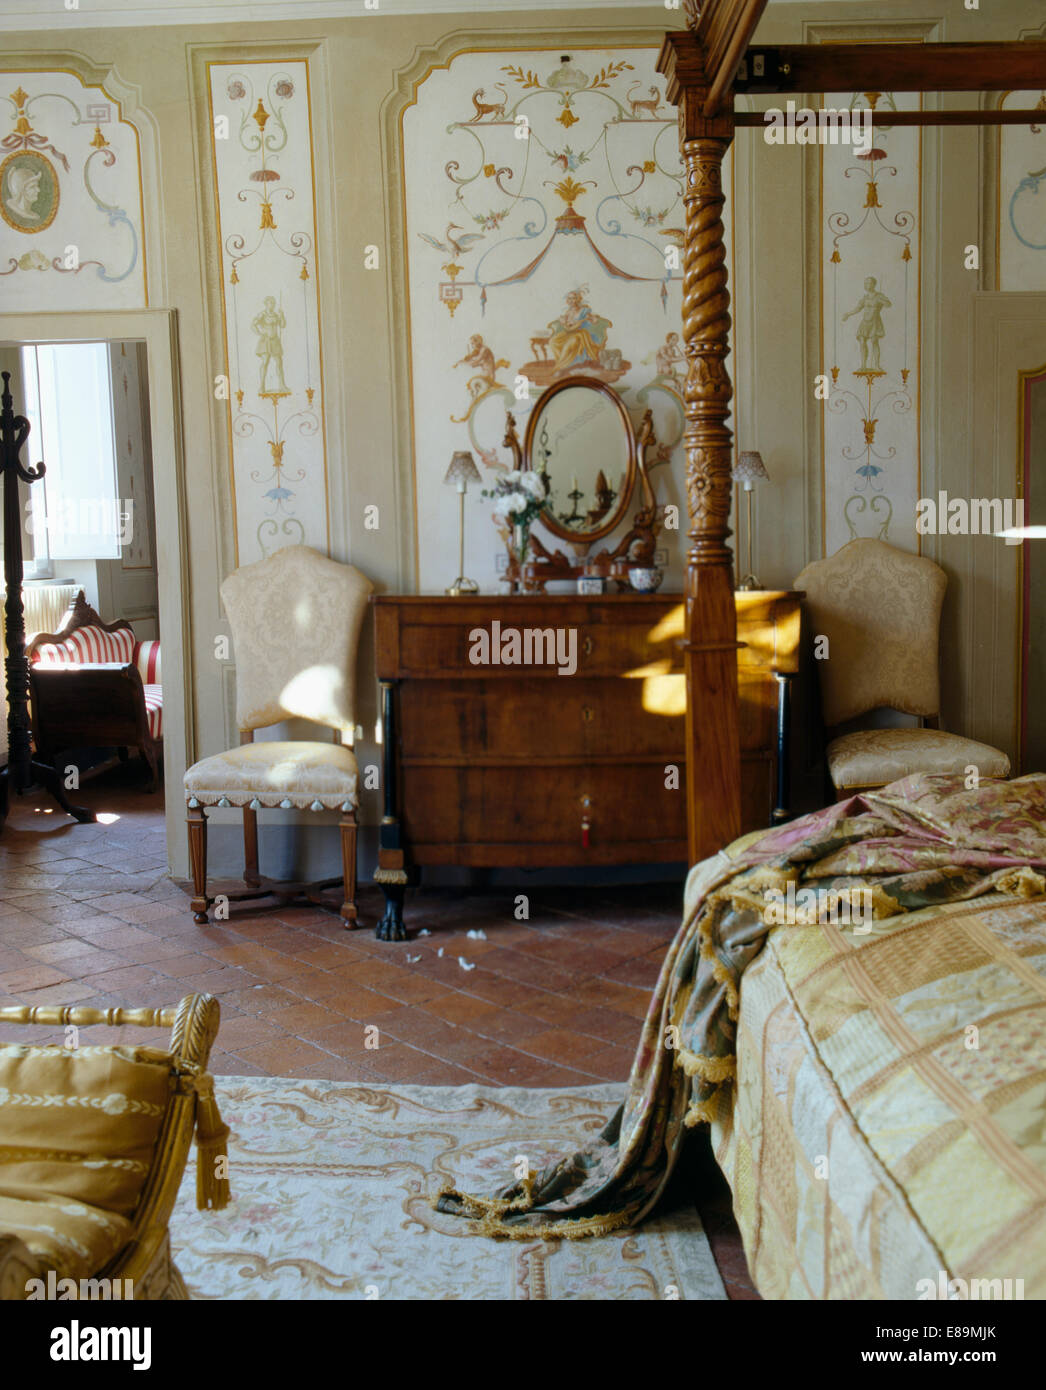 Decoratively painted wall panels in large Tuscan bedroom with ...